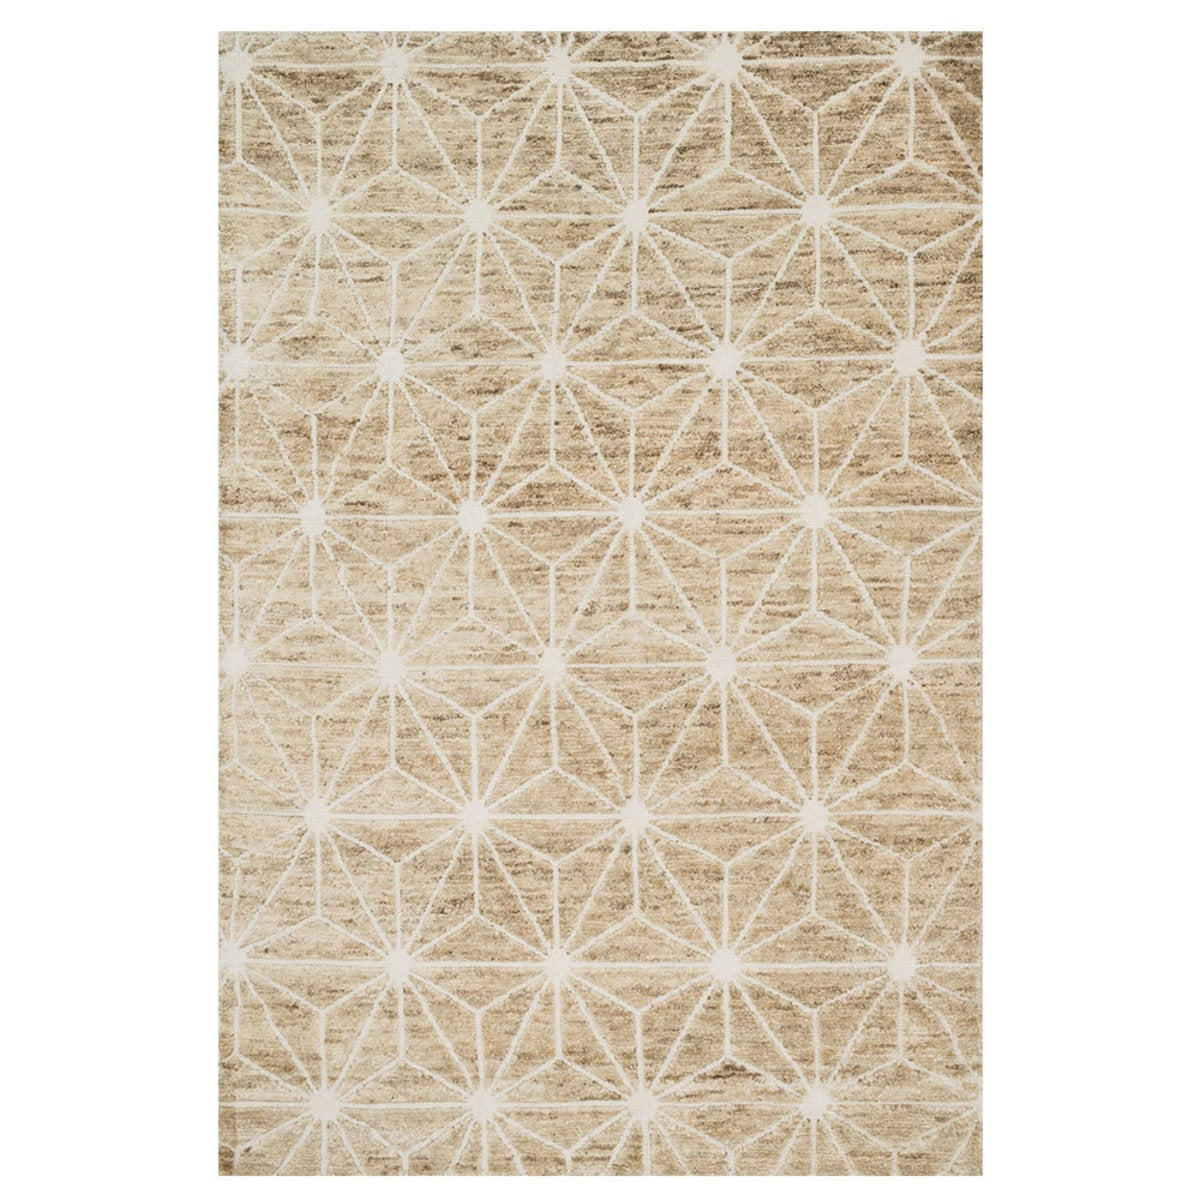 "Loloi Sahara Drawn to Scale Rug in Birch - 9'6"" x 13'6"" - Ivory"